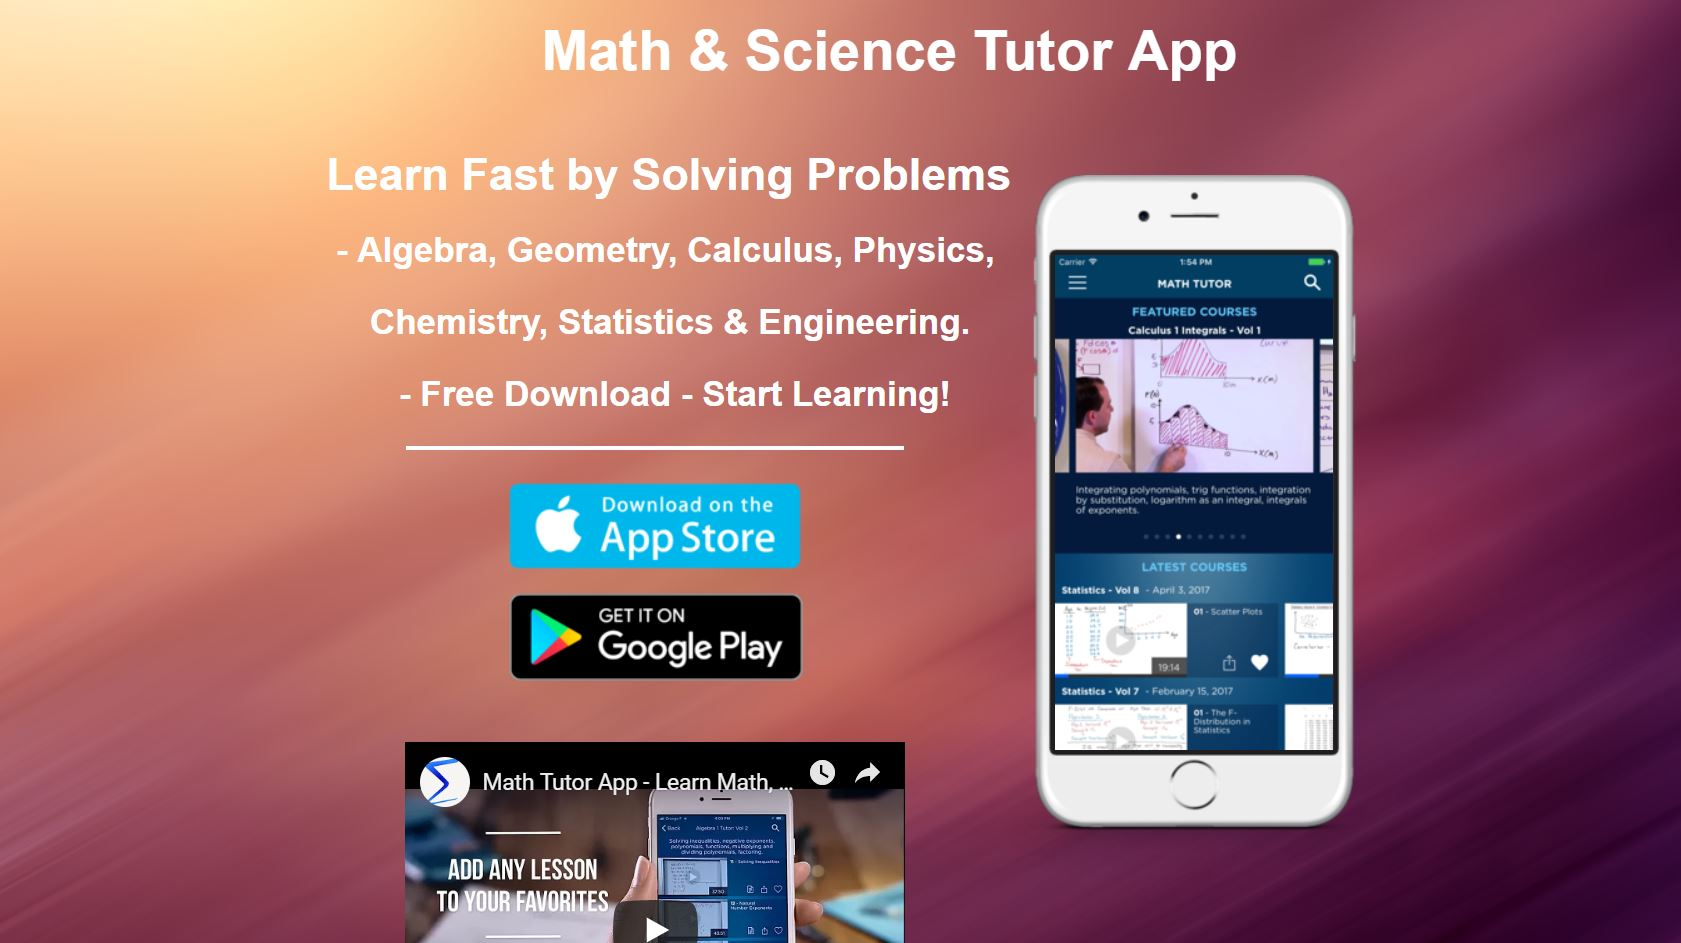 Math & Science Tutor App Codakid Top 21 Math Apps of 2019